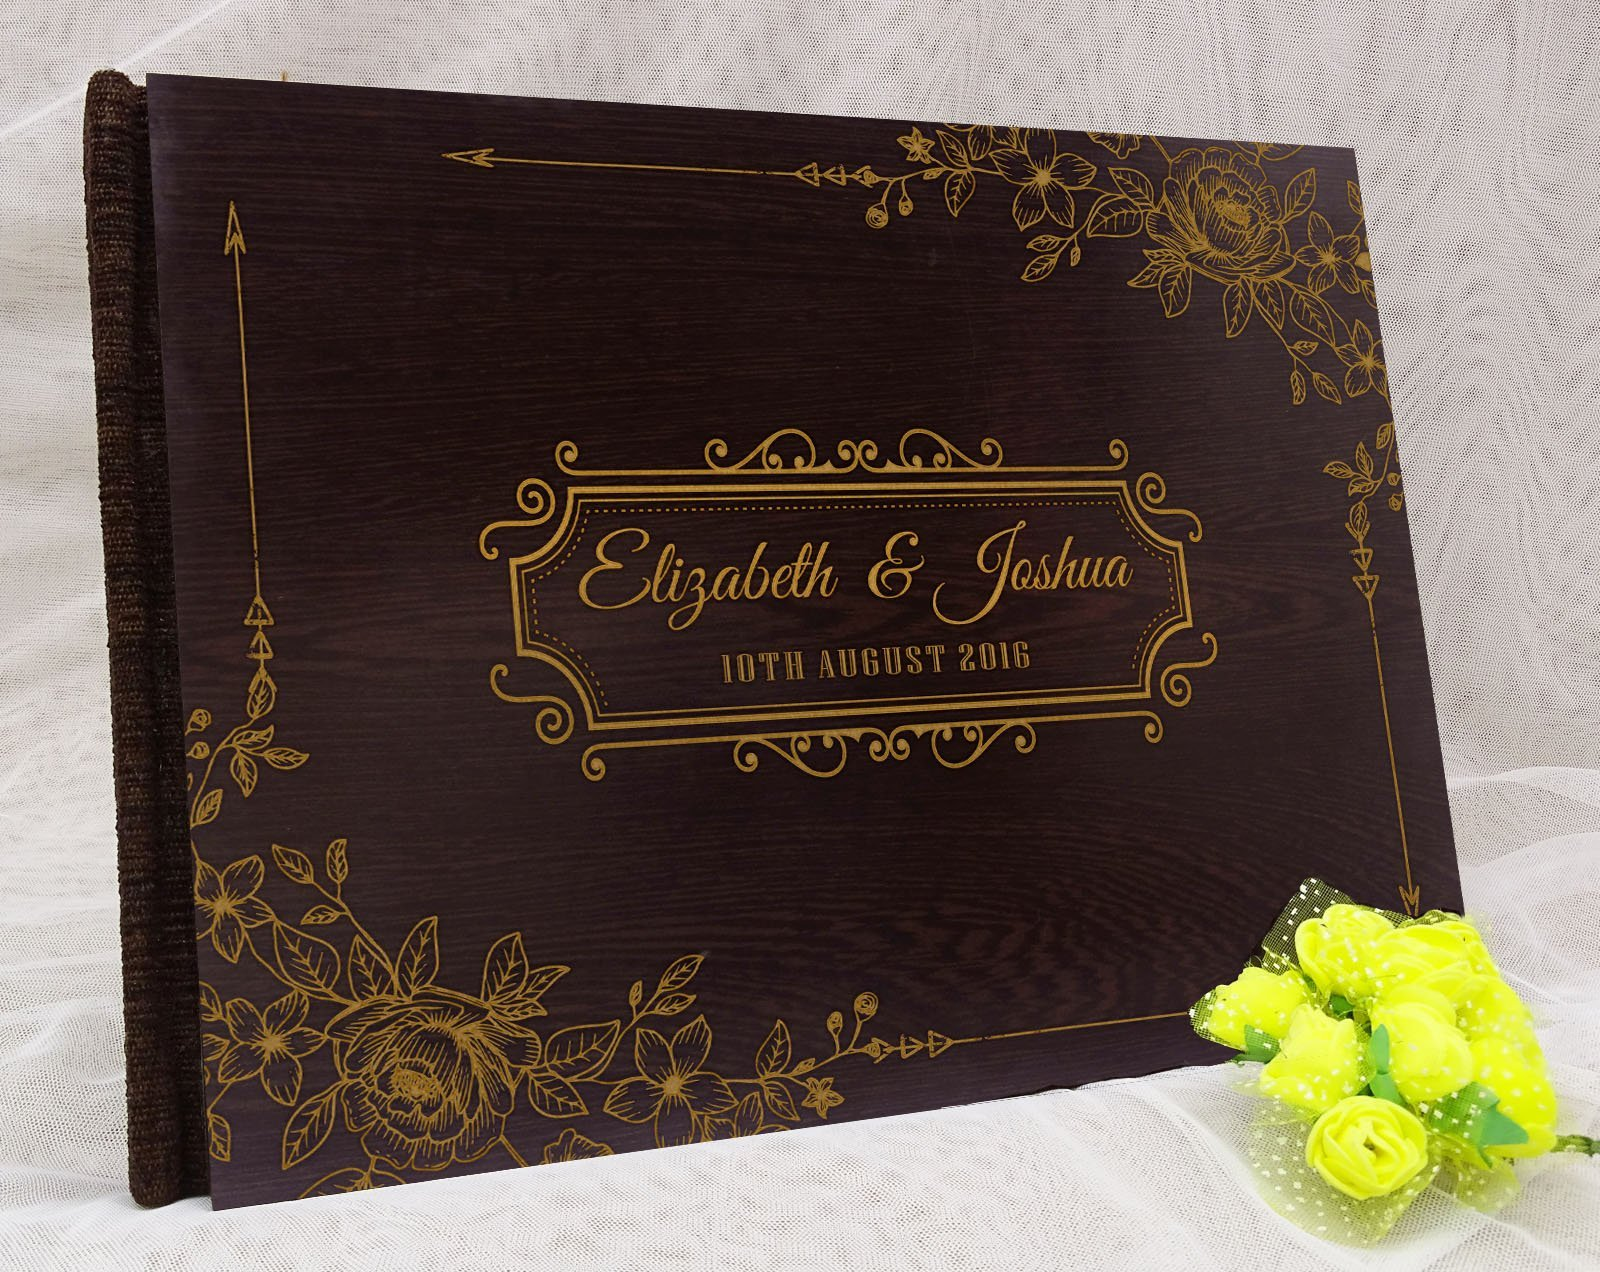 Personalized Wood Wooden Floral Engraved Bride & Groom Advice Book Personalized Rustic Wedding Guest Book - 50 Pages by Darling Souvenir (Image #4)